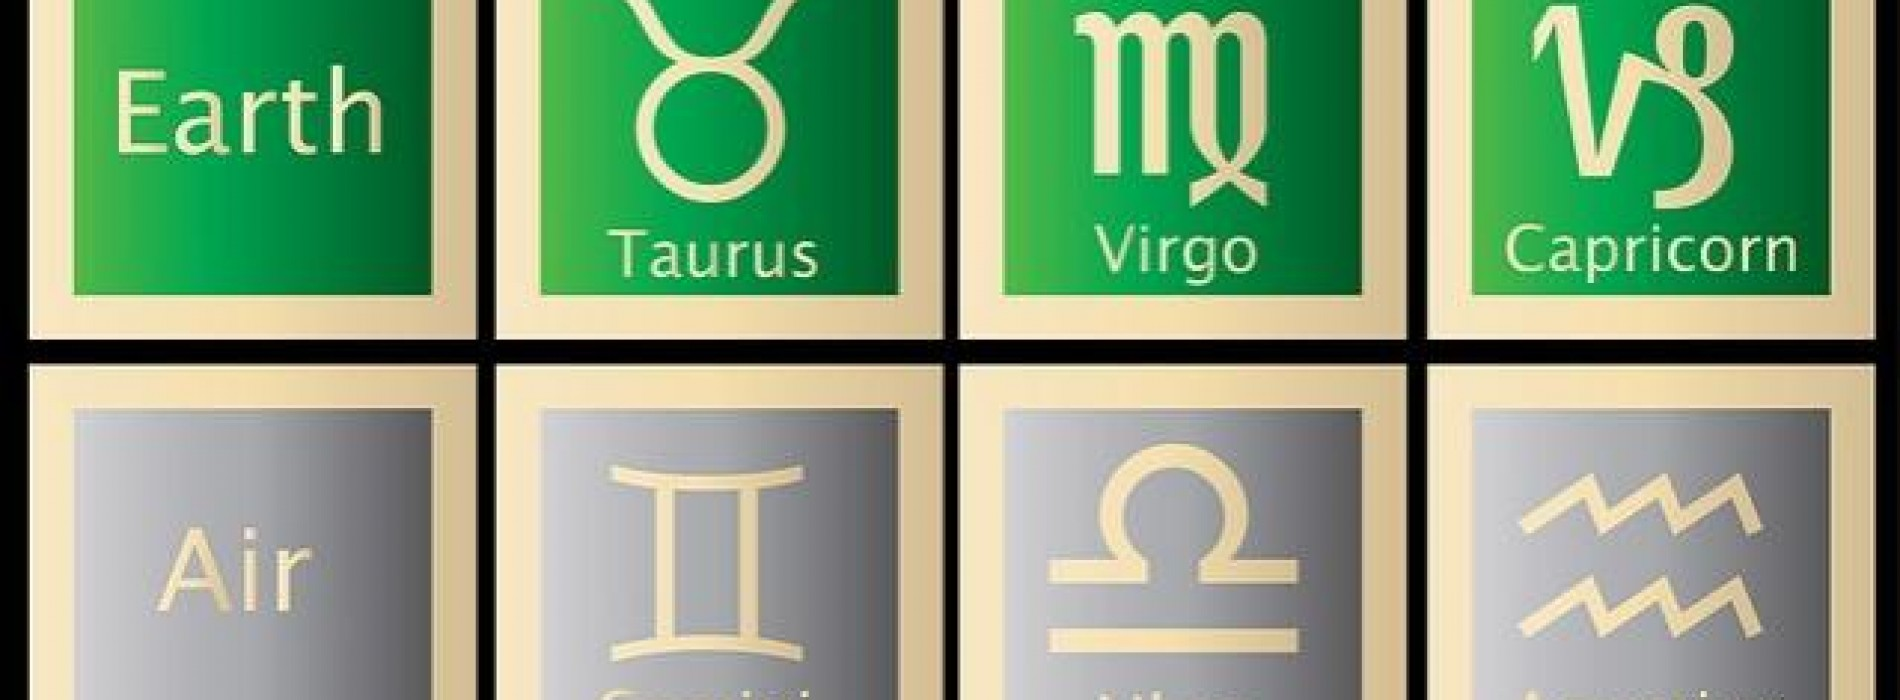 You're More Likely to be a Celeb if You're An Aquarius